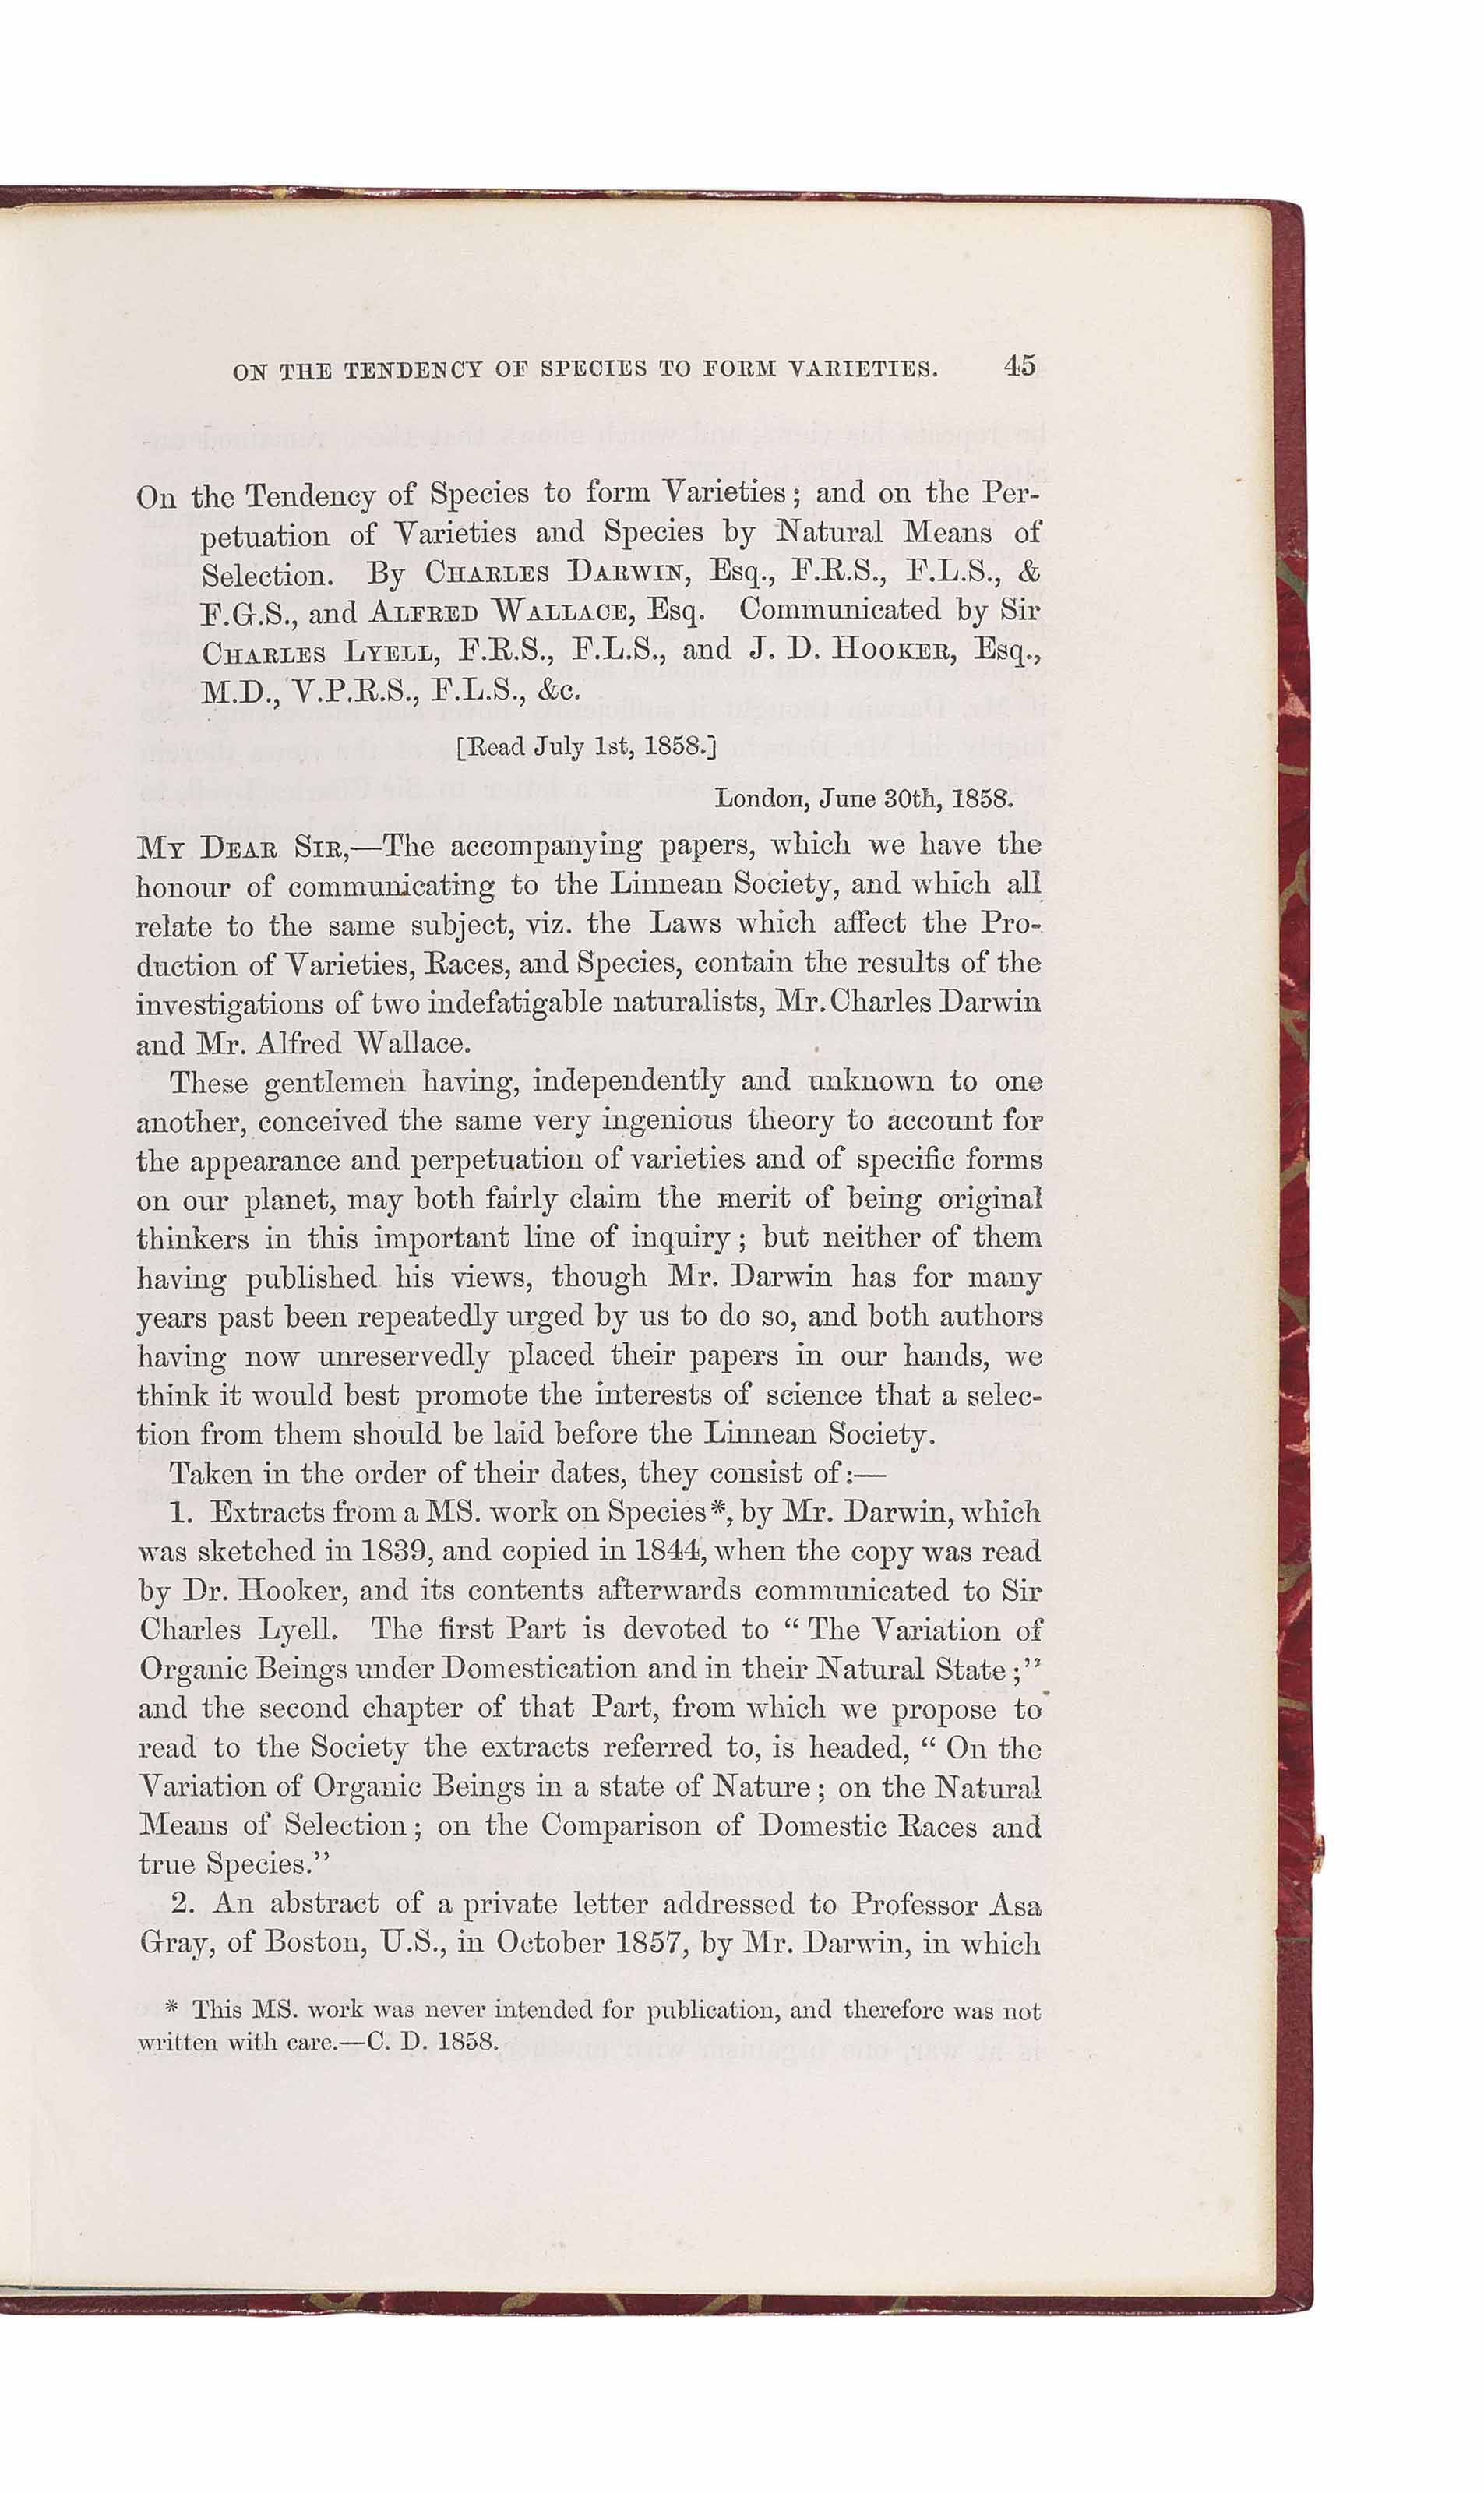 DARWIN, Charles Robert (1809-1882) and Alfred Russel WALLACE (1823-1913). 'On the Tendency of Species to form Varieties.' Extract from: Journal of the Proceedings of the Linnean Society, Vol. III, No. 9. London: 1858.